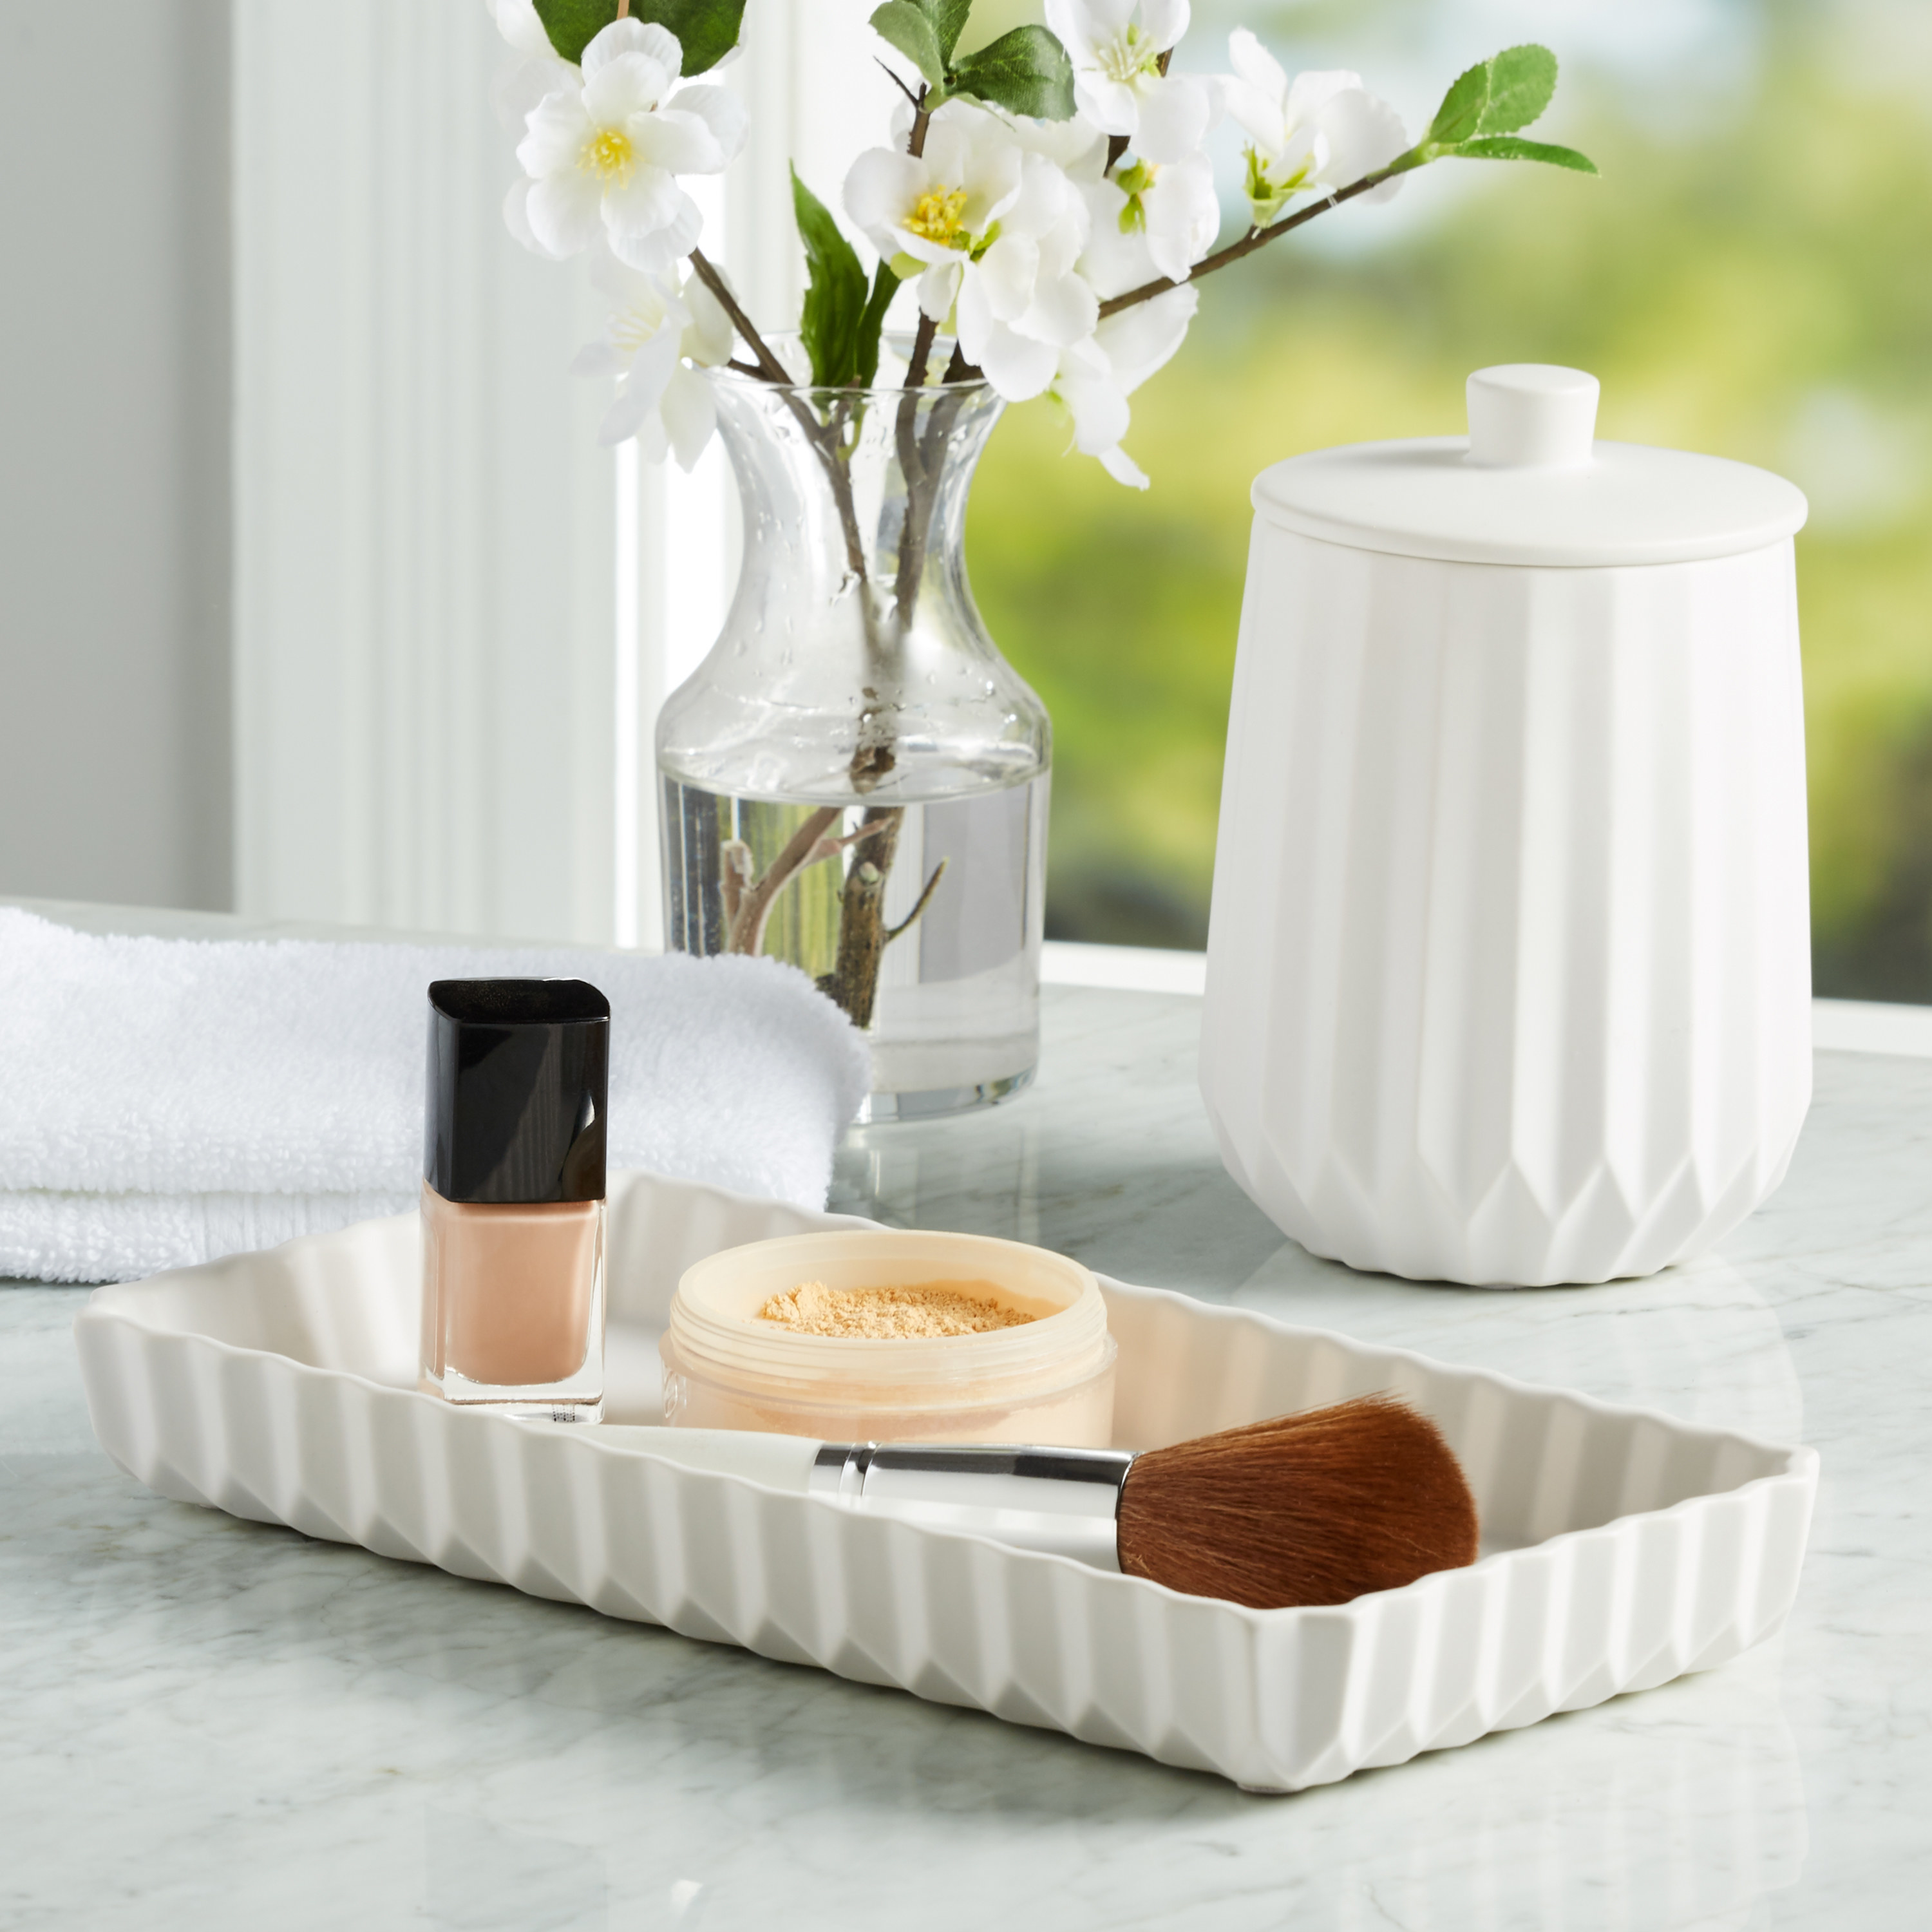 The bath accessory set used on vanity to hold makeup